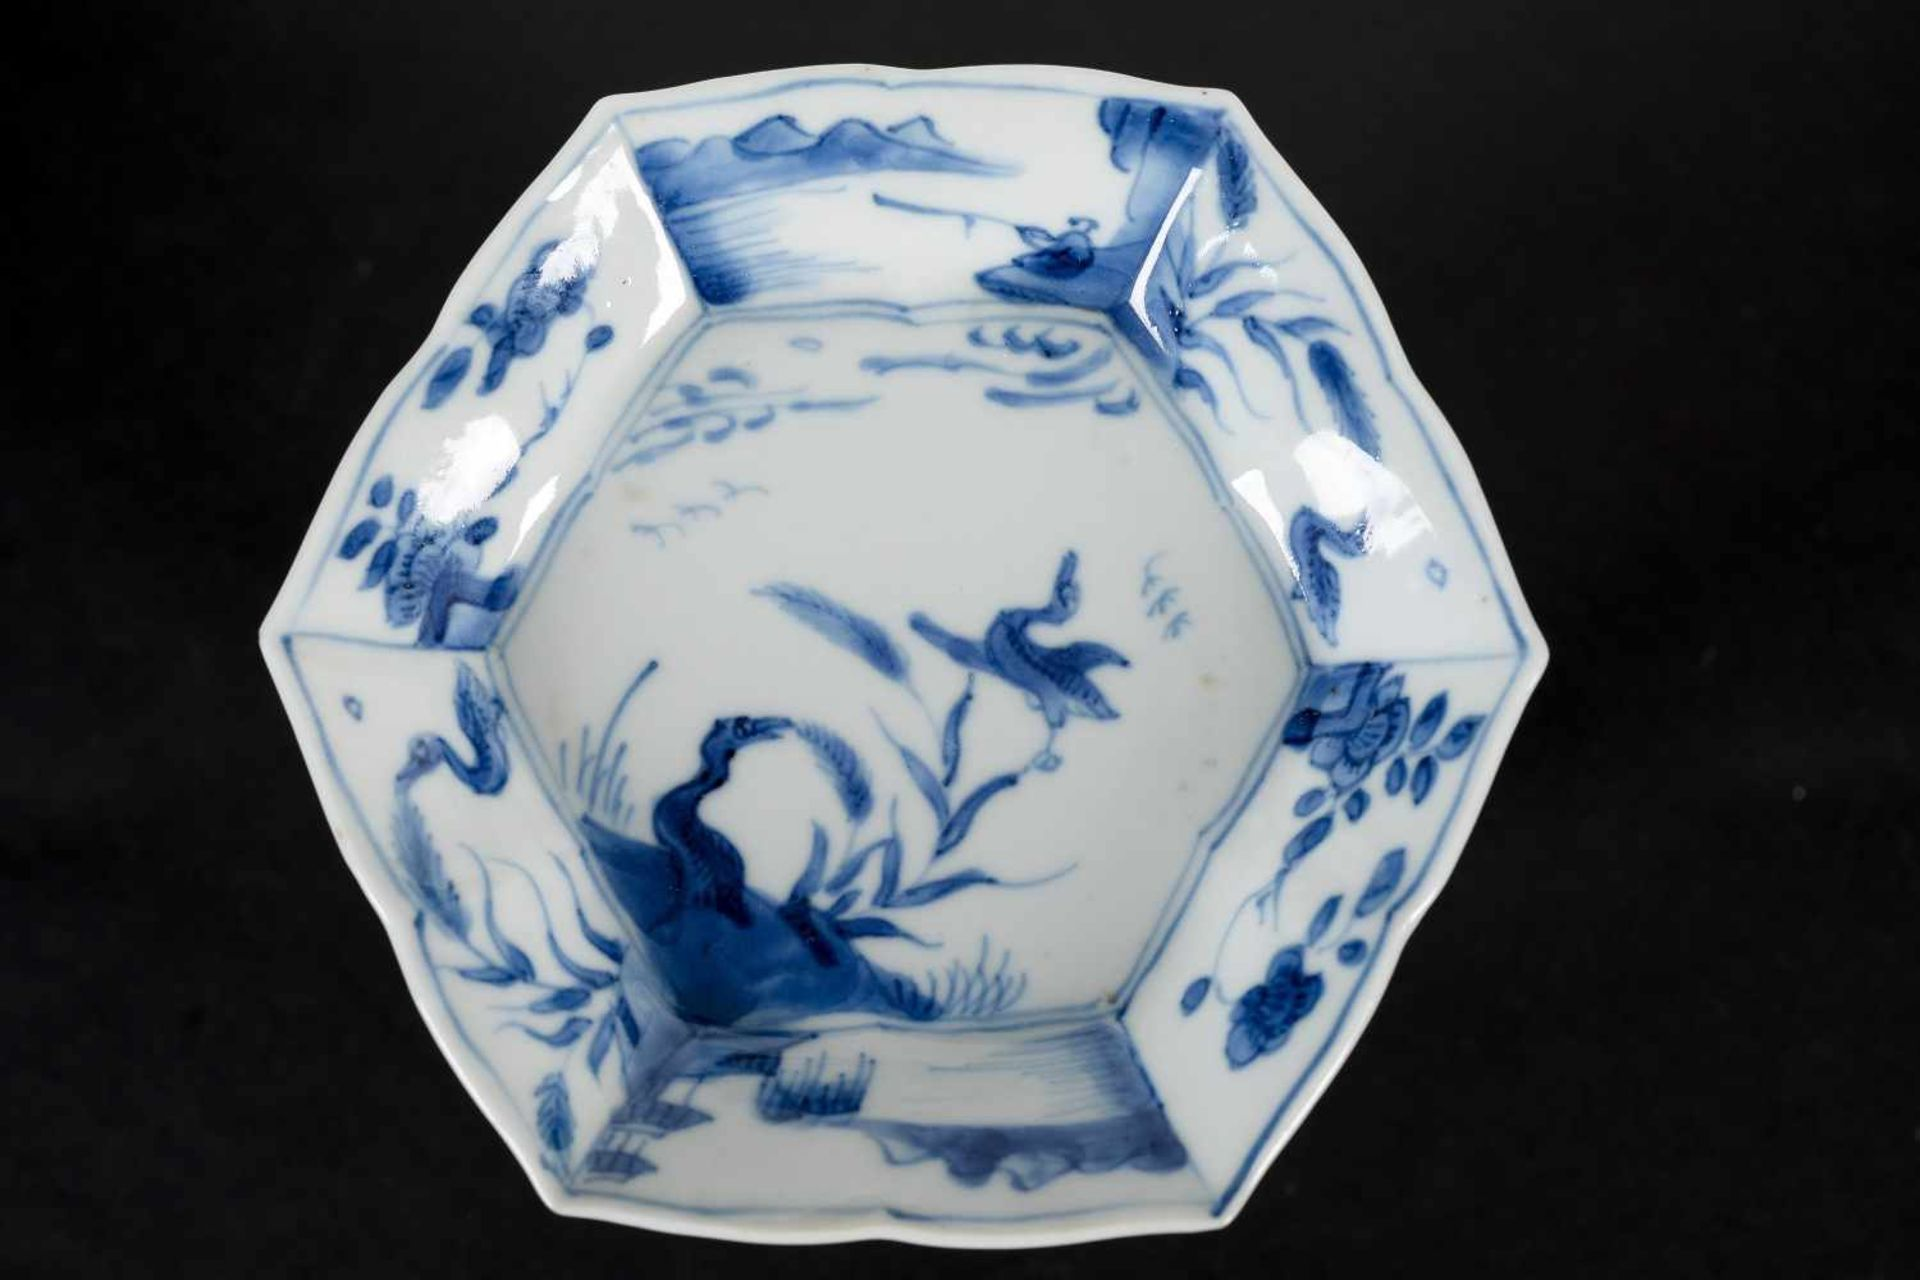 A set of three hexagonal blue and white porcelain cups with saucers, decorated with ducks, flowers - Bild 7 aus 12